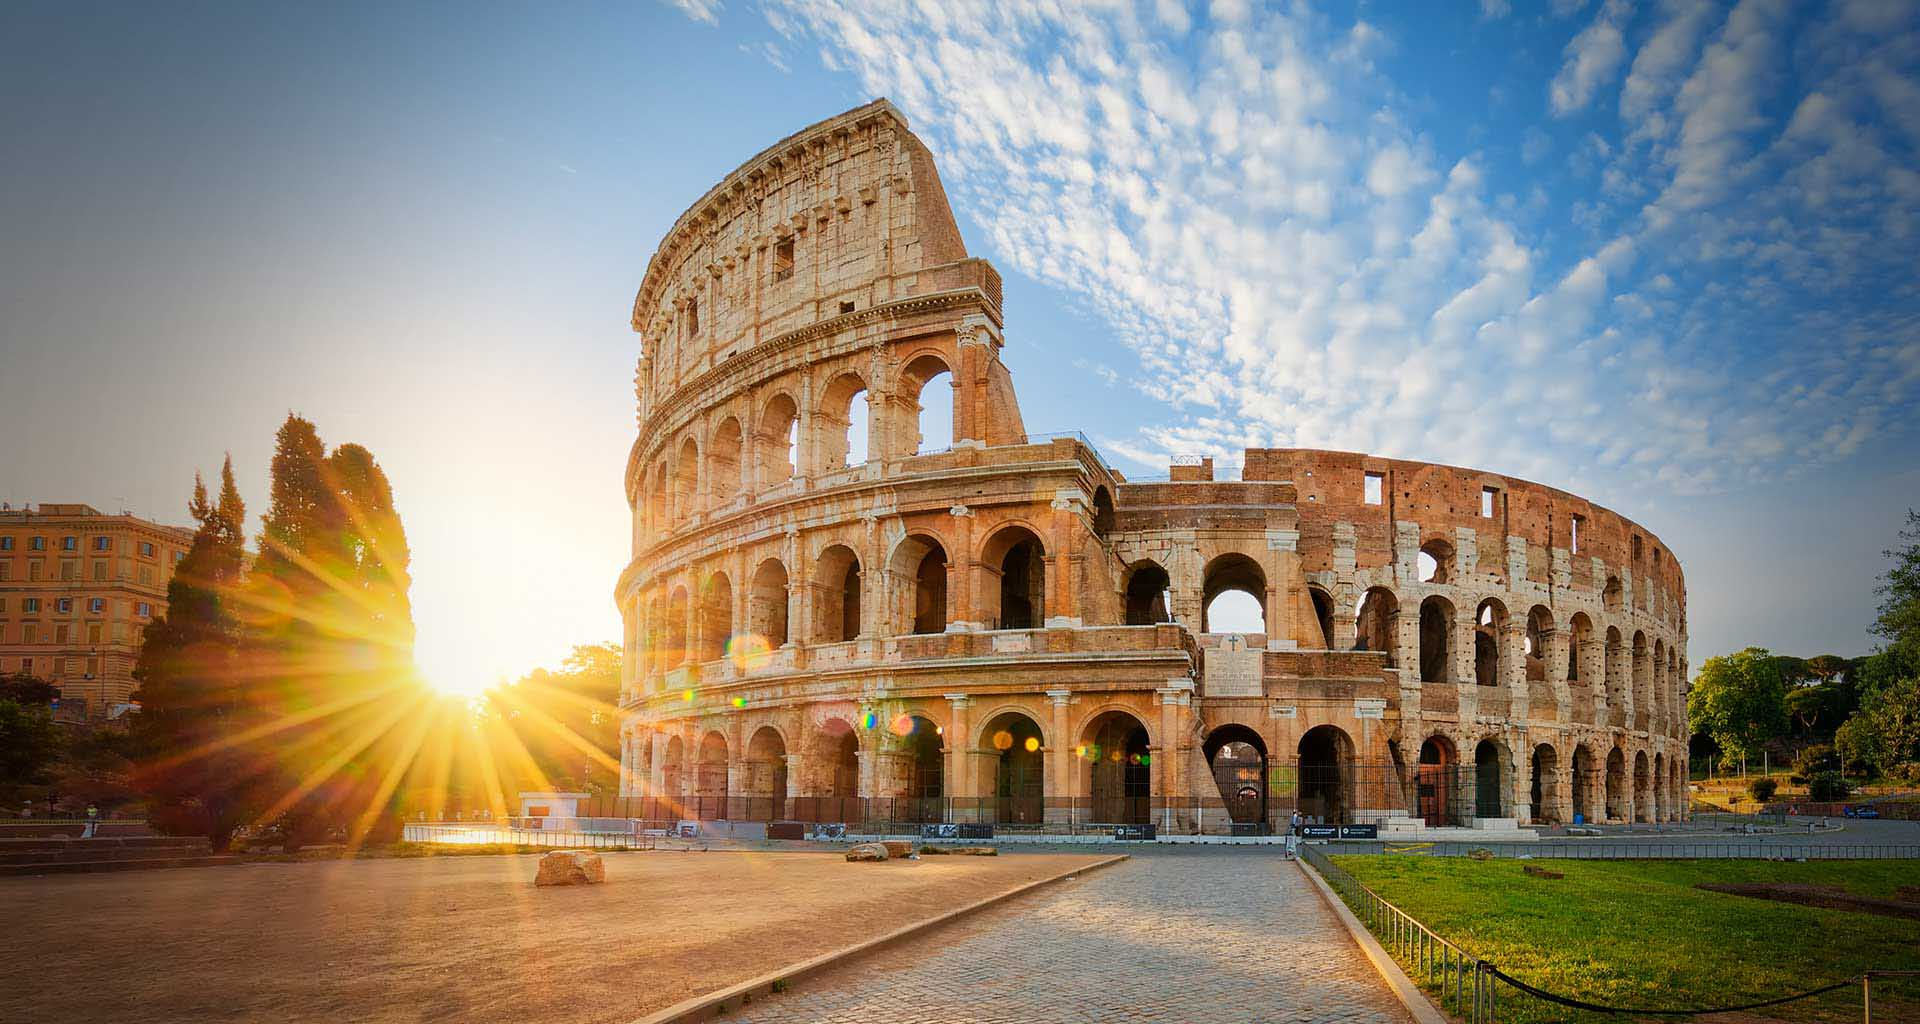 rise-of-rome-empire-roman